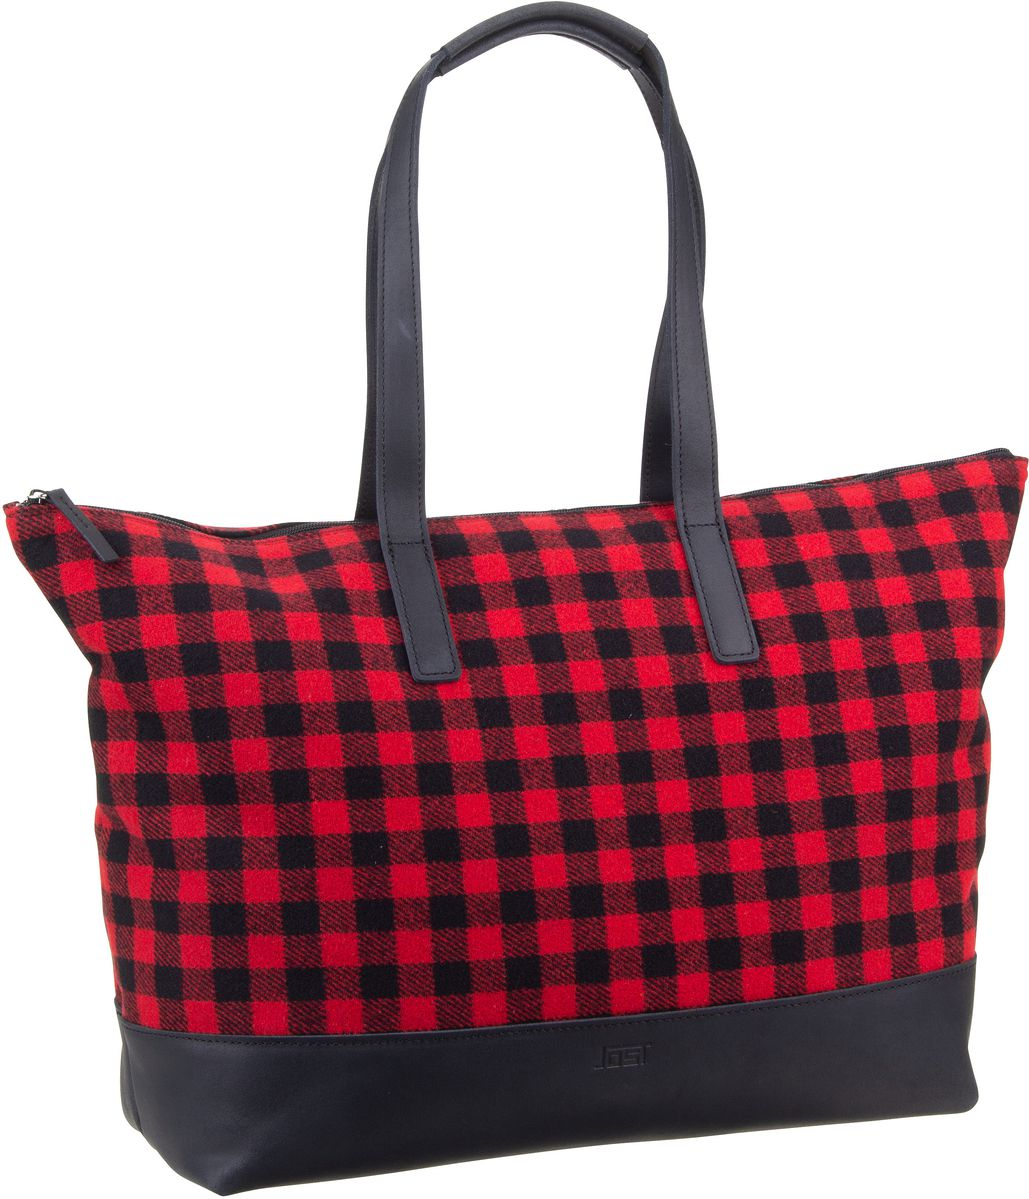 Shopper Nura 3834 Shopper Black/Red